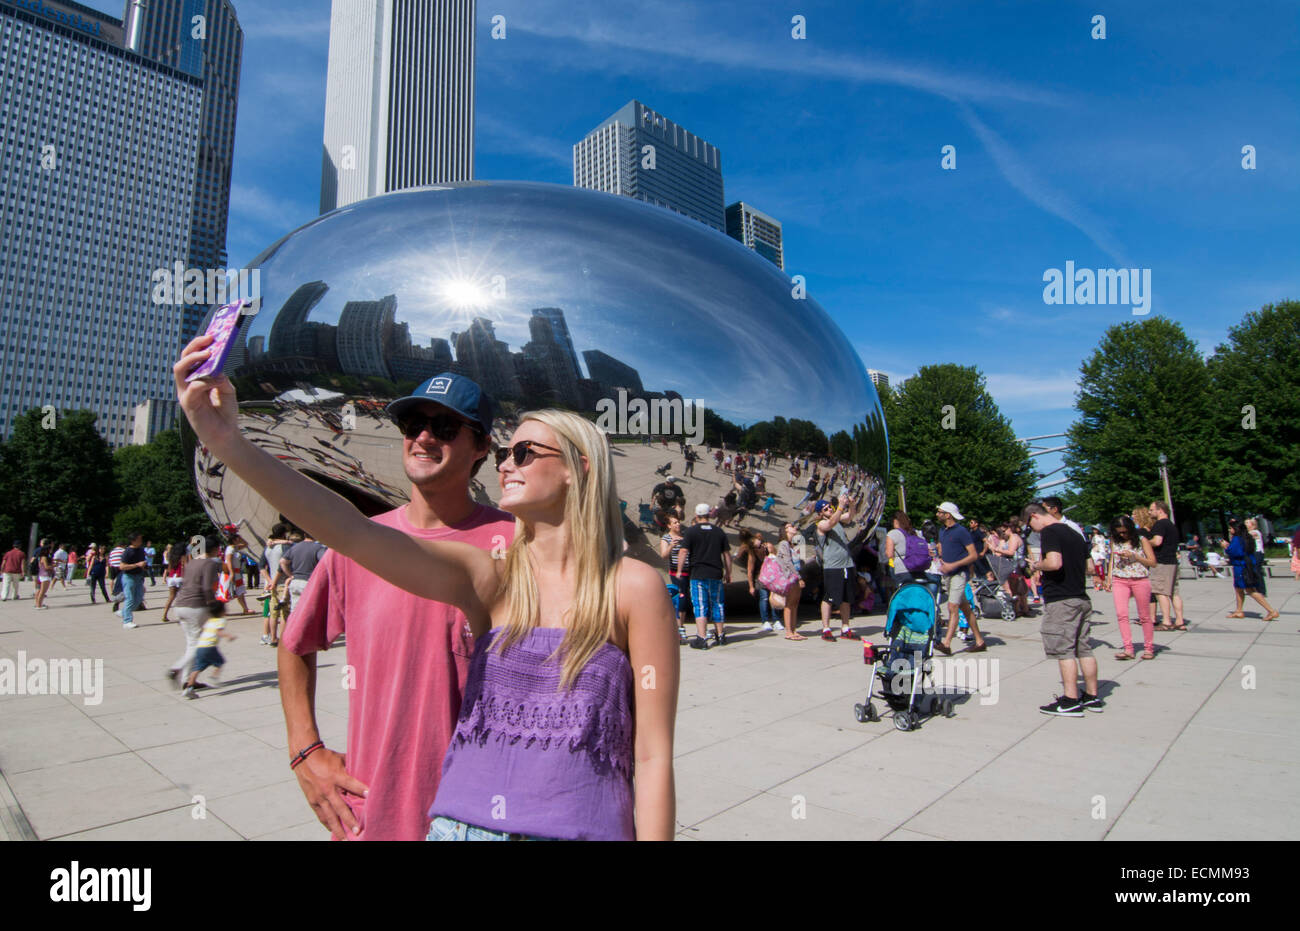 Chicago Illinois Millennium Park with famous Cloud Gate sculpture The Bean with skyline in background skyscrapers - Stock Image